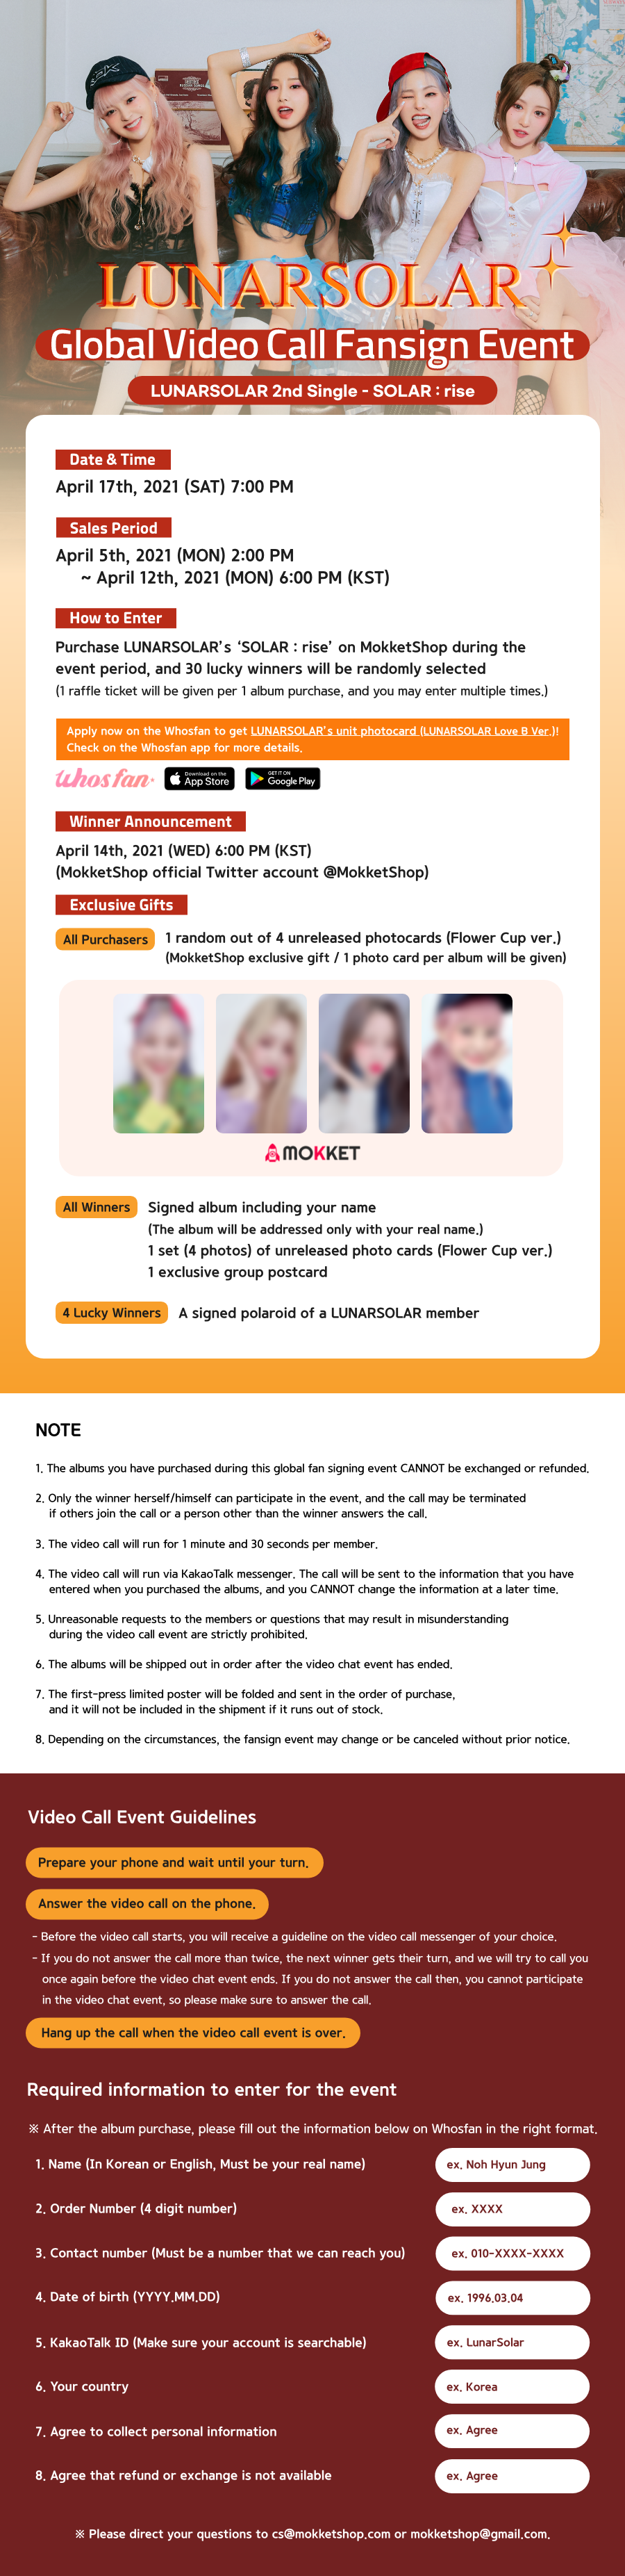 LUNARSOLAR 2nd Single SOLAR : rise global online video call fansign event